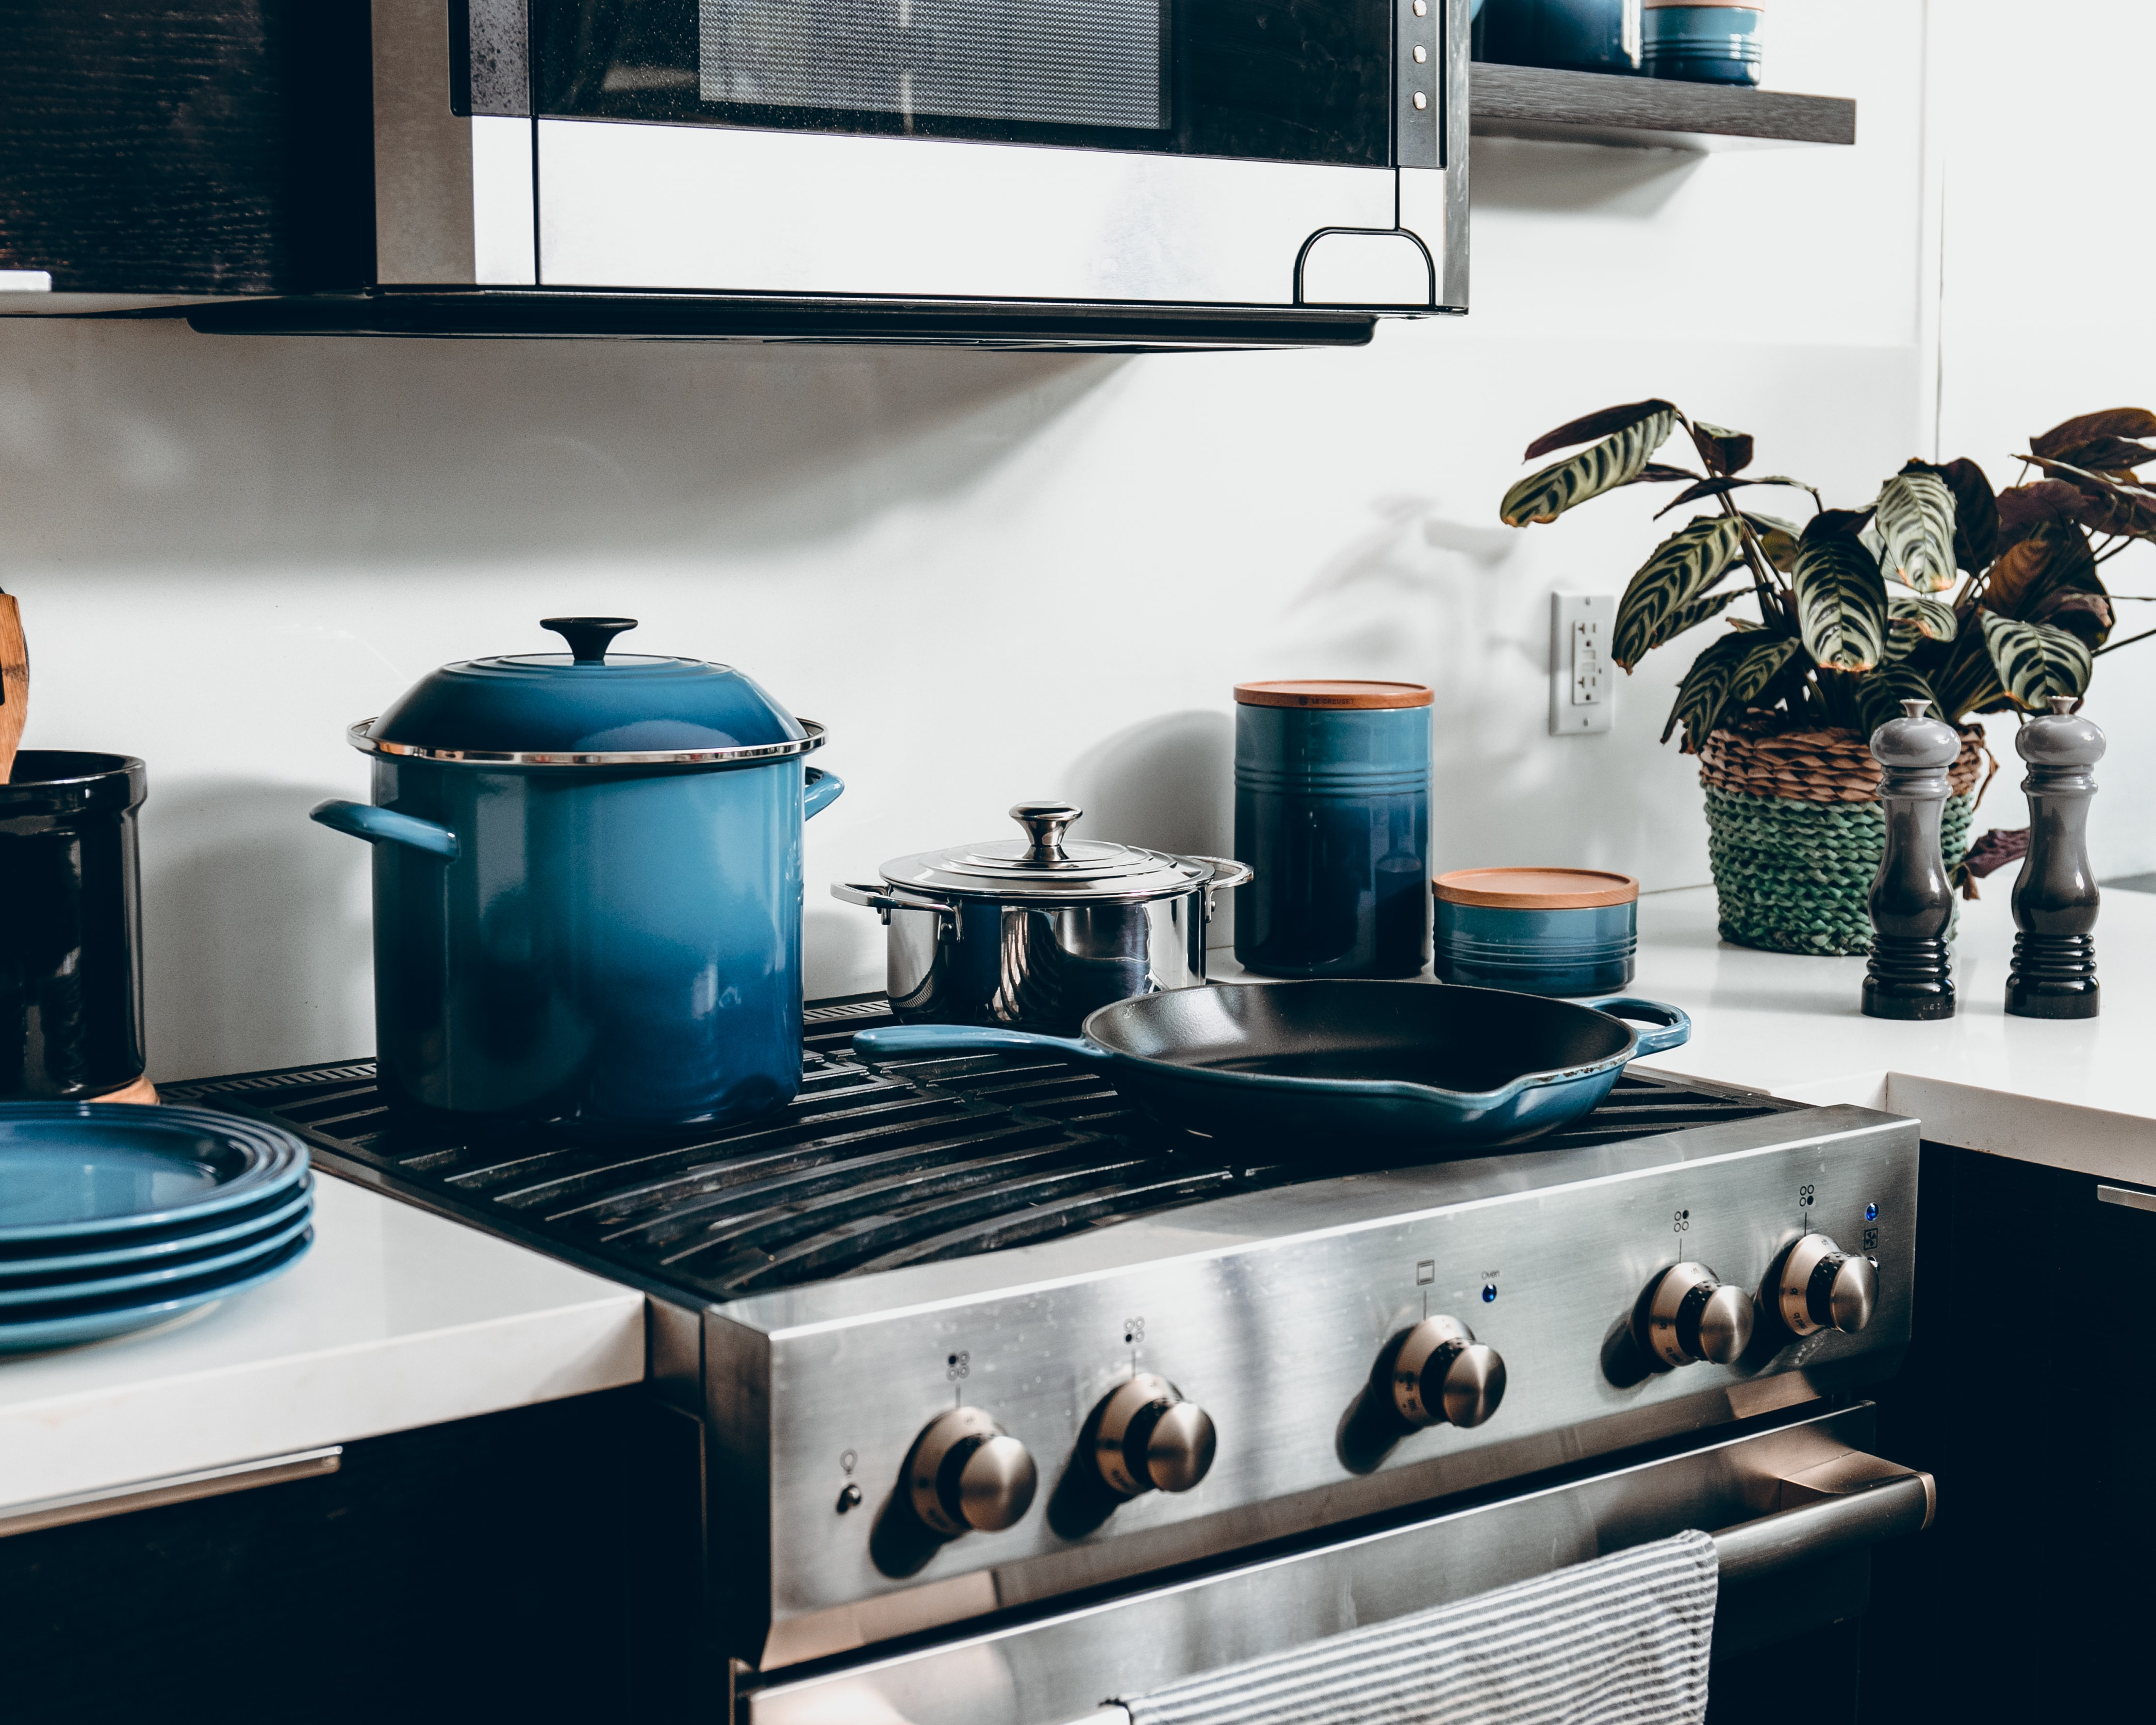 How to Degrease a Stove Top's featured image